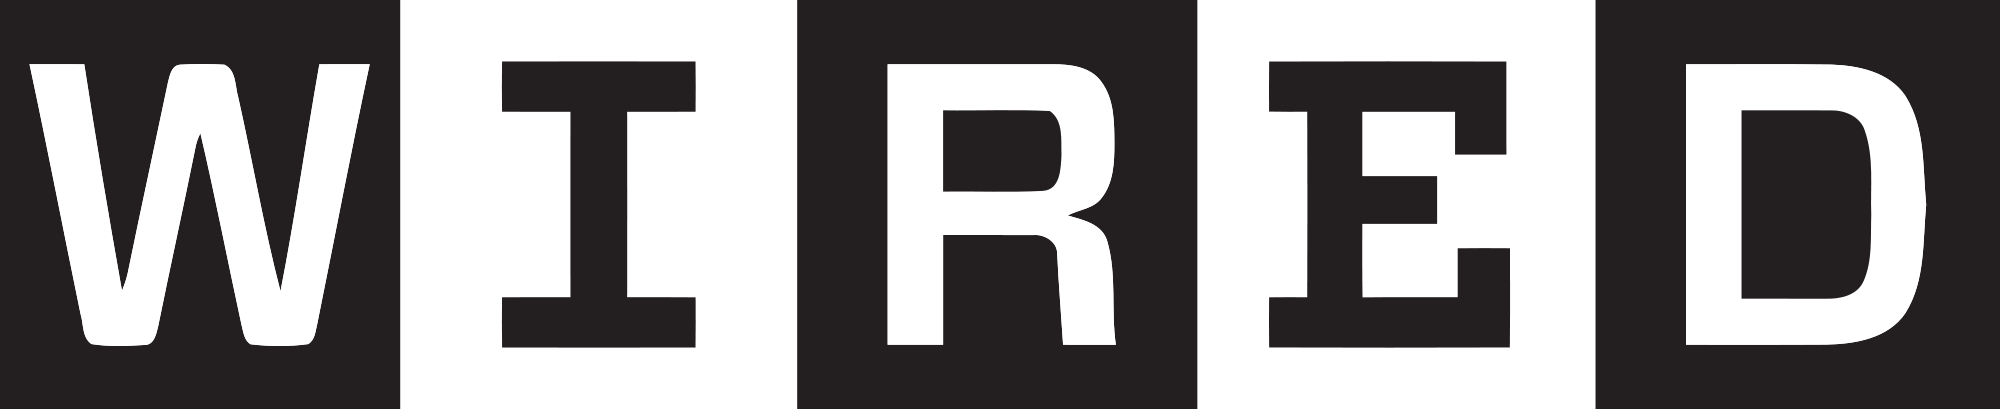 2000px-Wired_logo